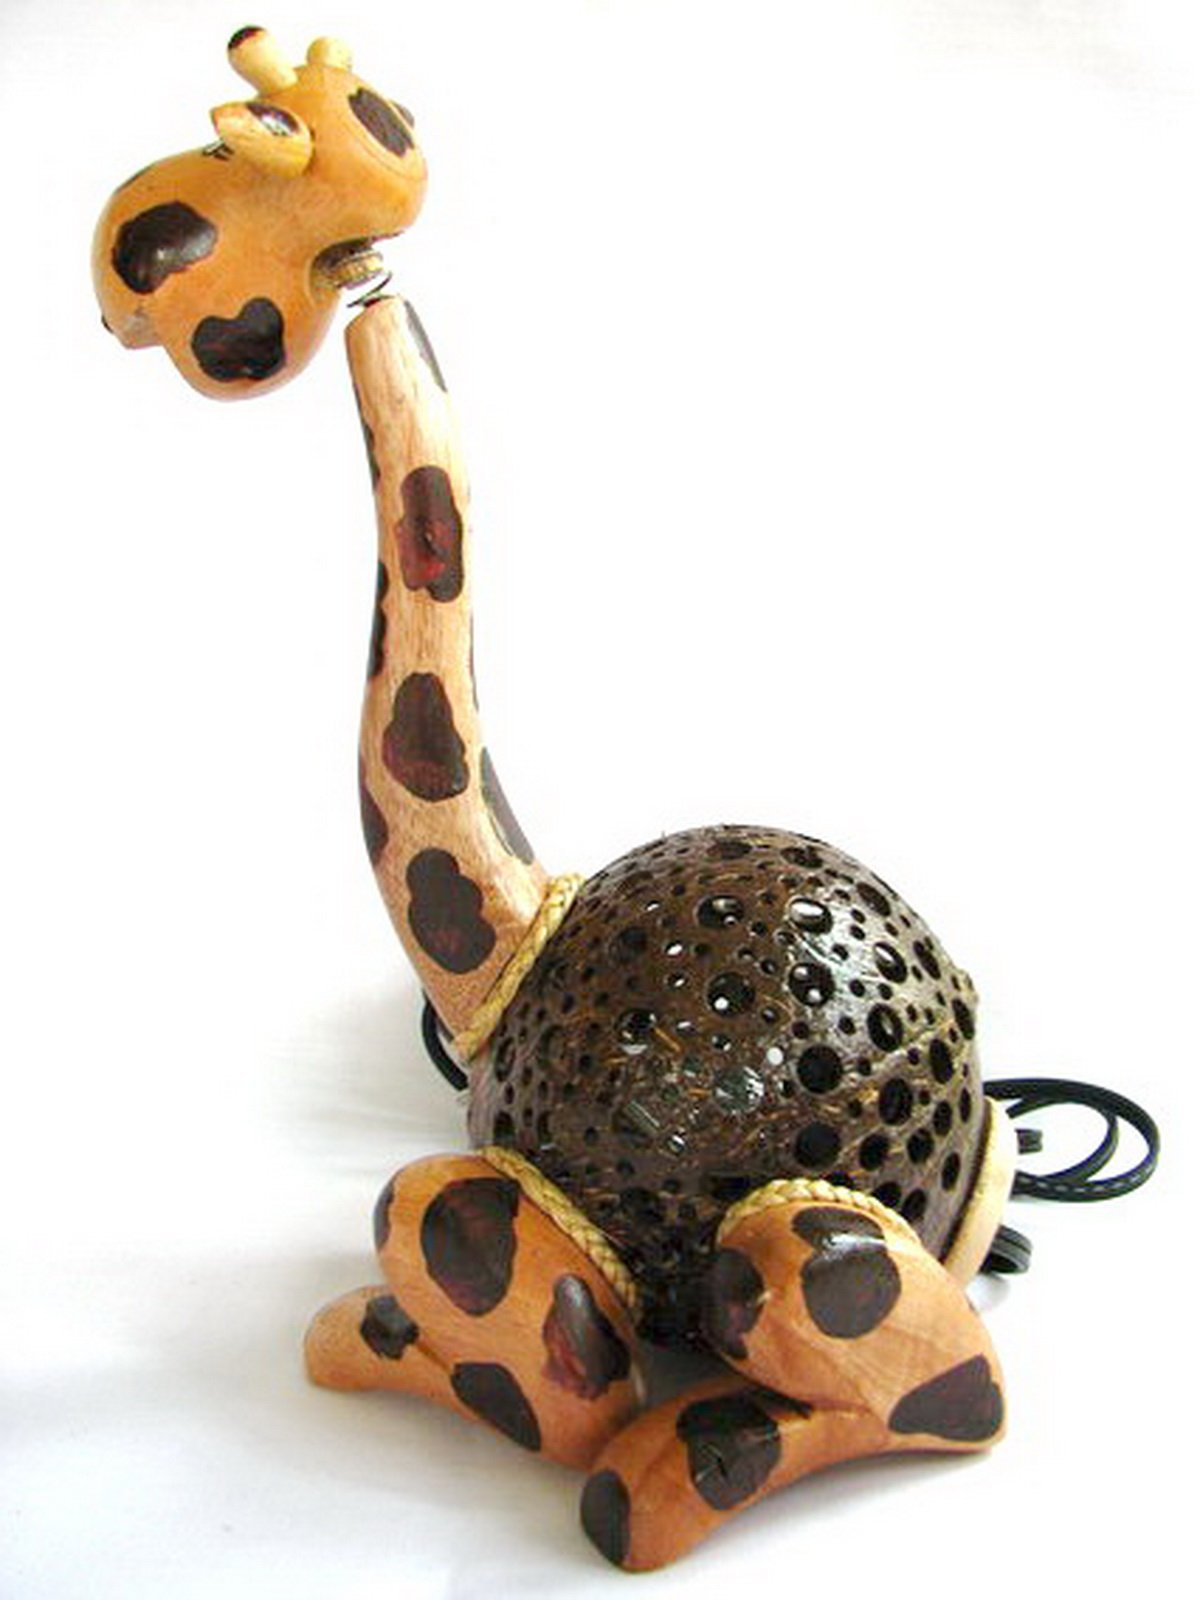 Coconut Shell Lamp - Giraffe Lamp 10'' Height - Wooden Crafts Handmade of Thailand Craftsman by Thailand Gifts Shop (Image #2)